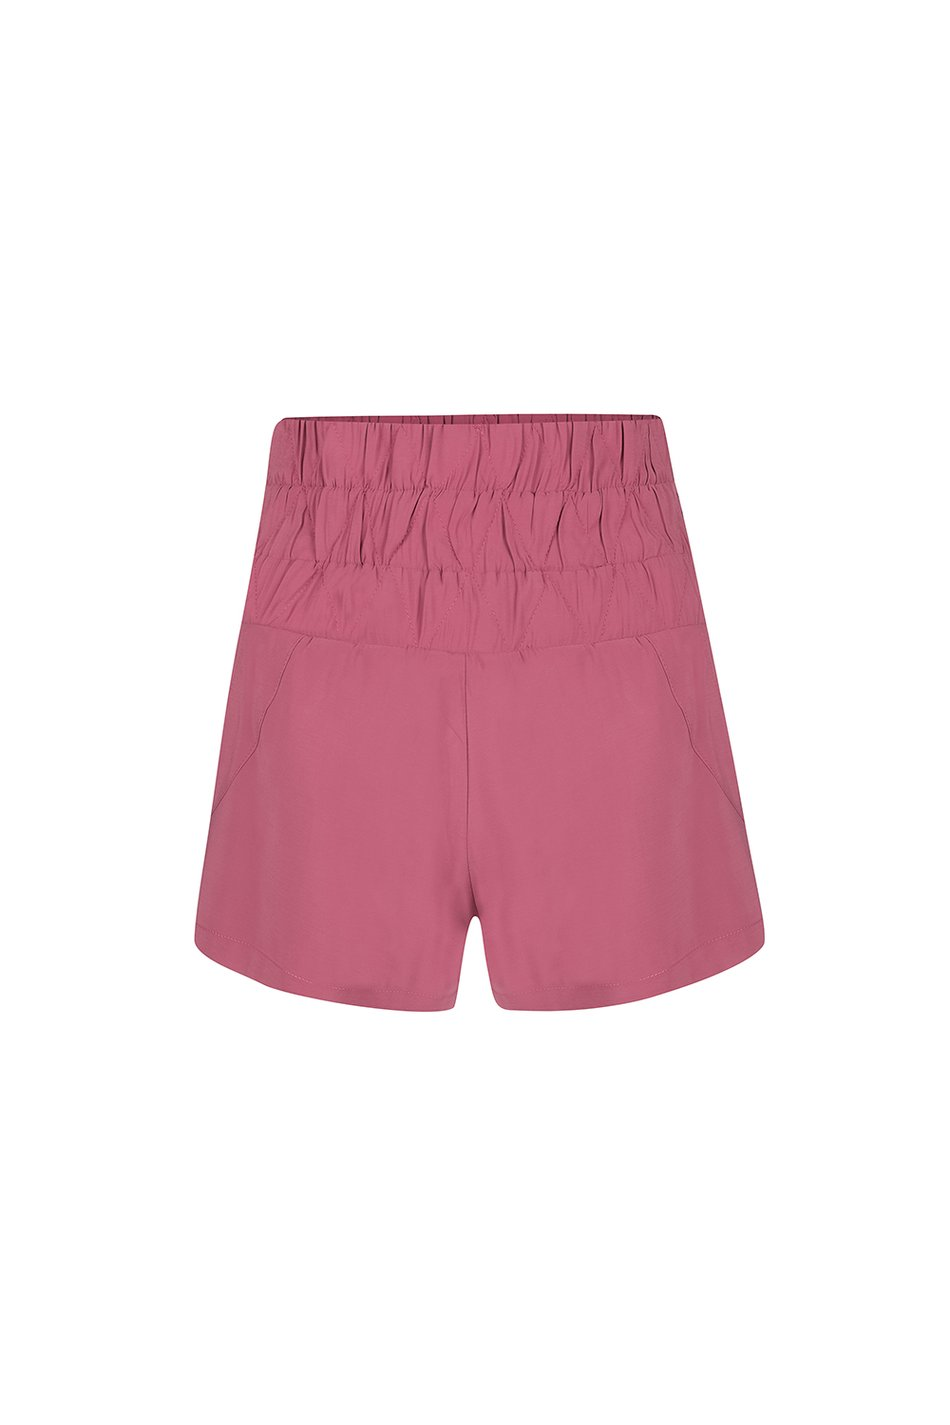 Shorts Tencel Ver21